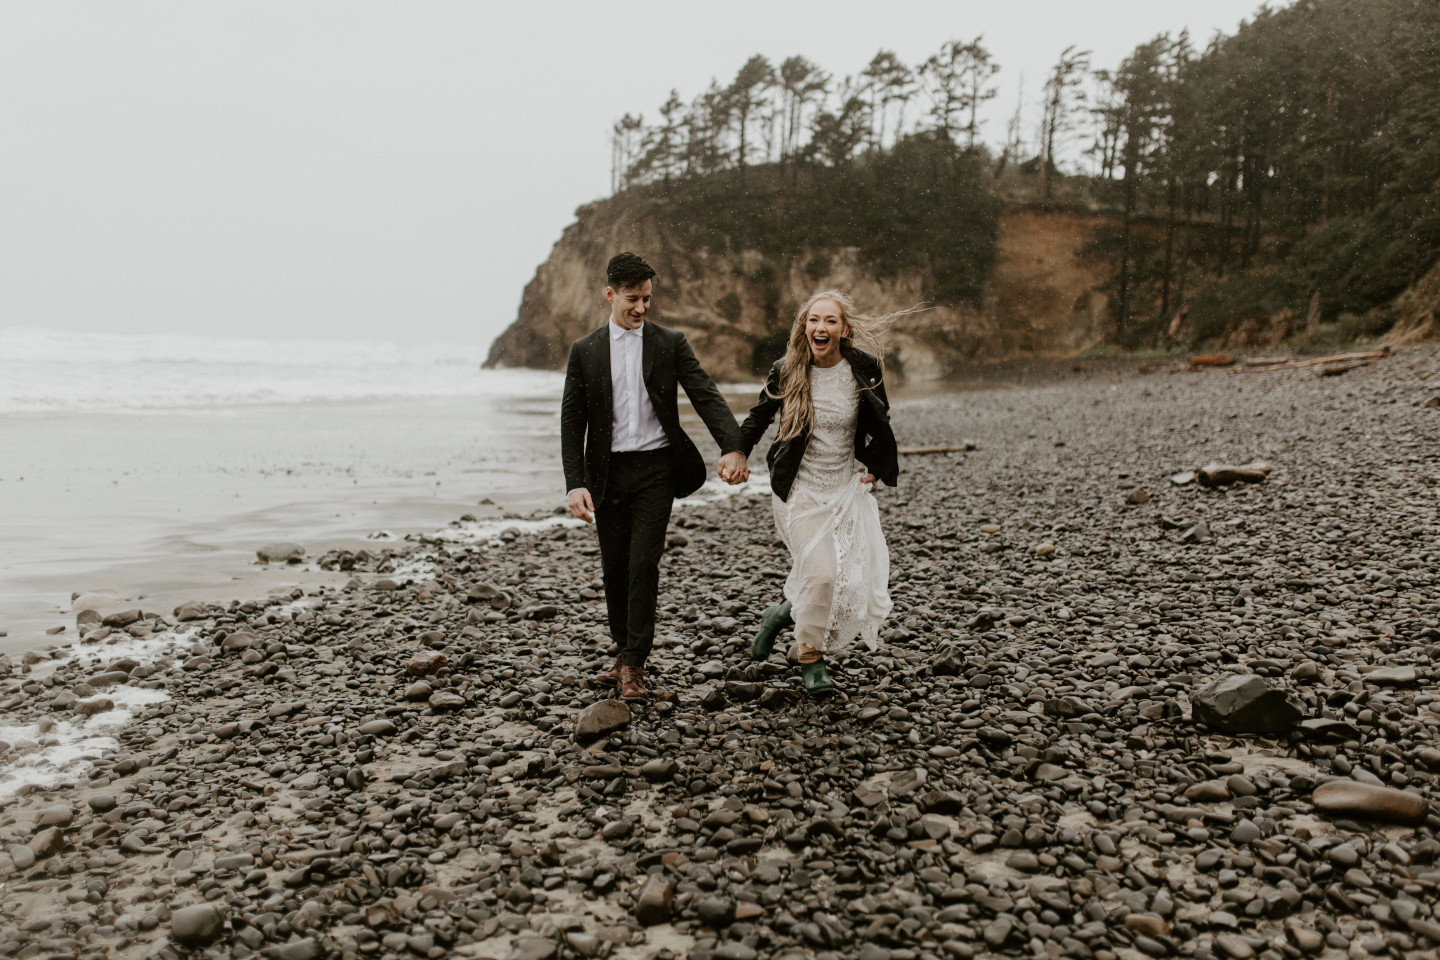 Hannah and Grant walk along the rocks of Hug Point in Cannon Beach, Oregon. Wedding photography in Portland Oregon by Sienna Plus Josh.